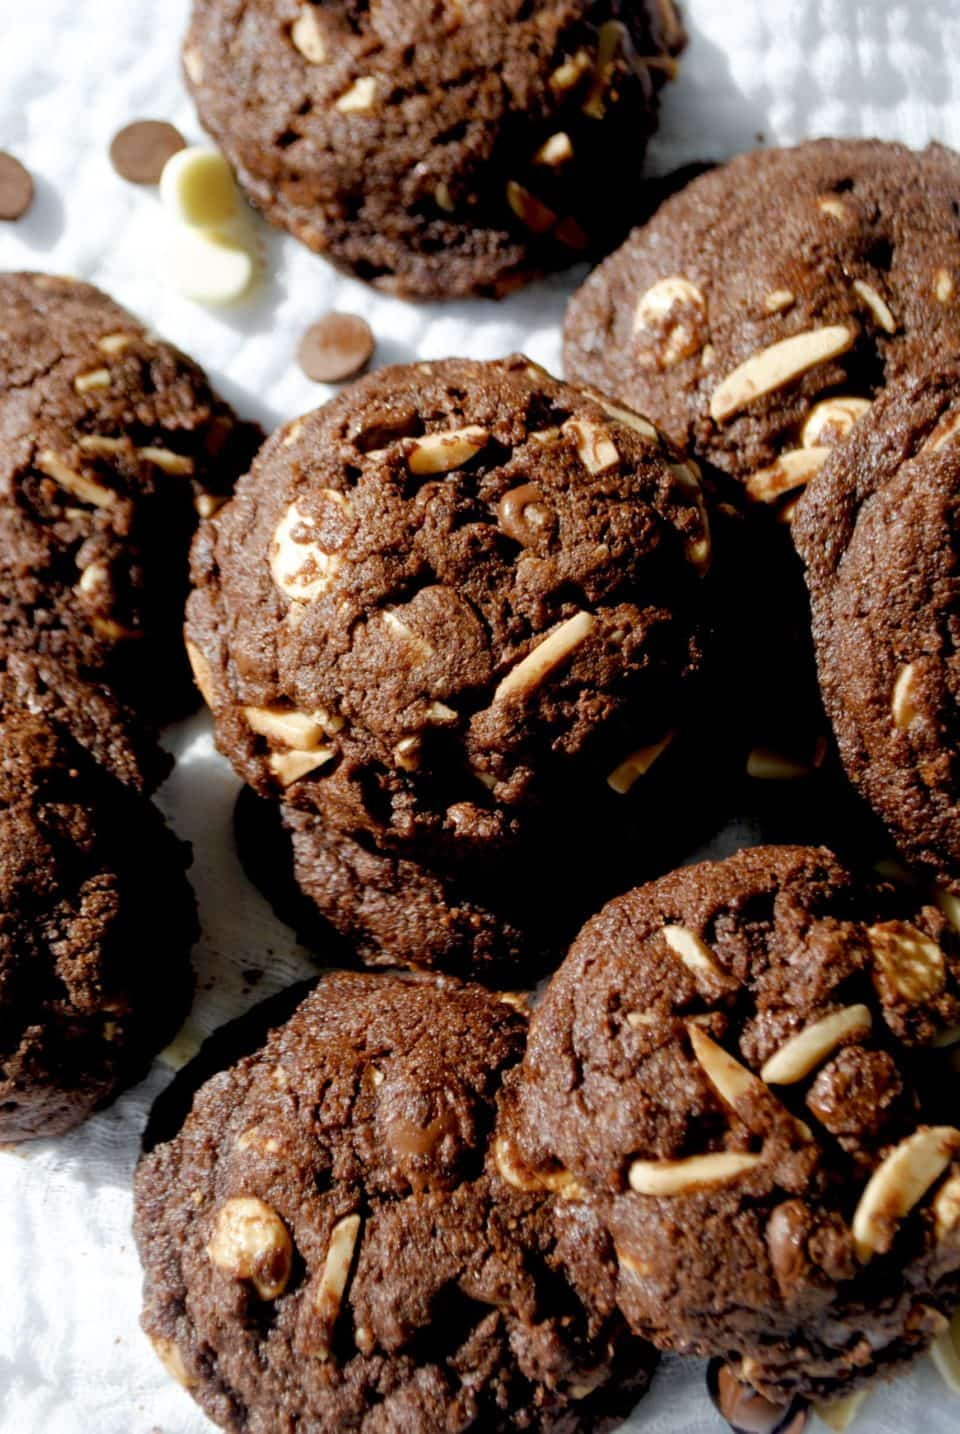 chocolate almond cookies cooling on a rack after being baked